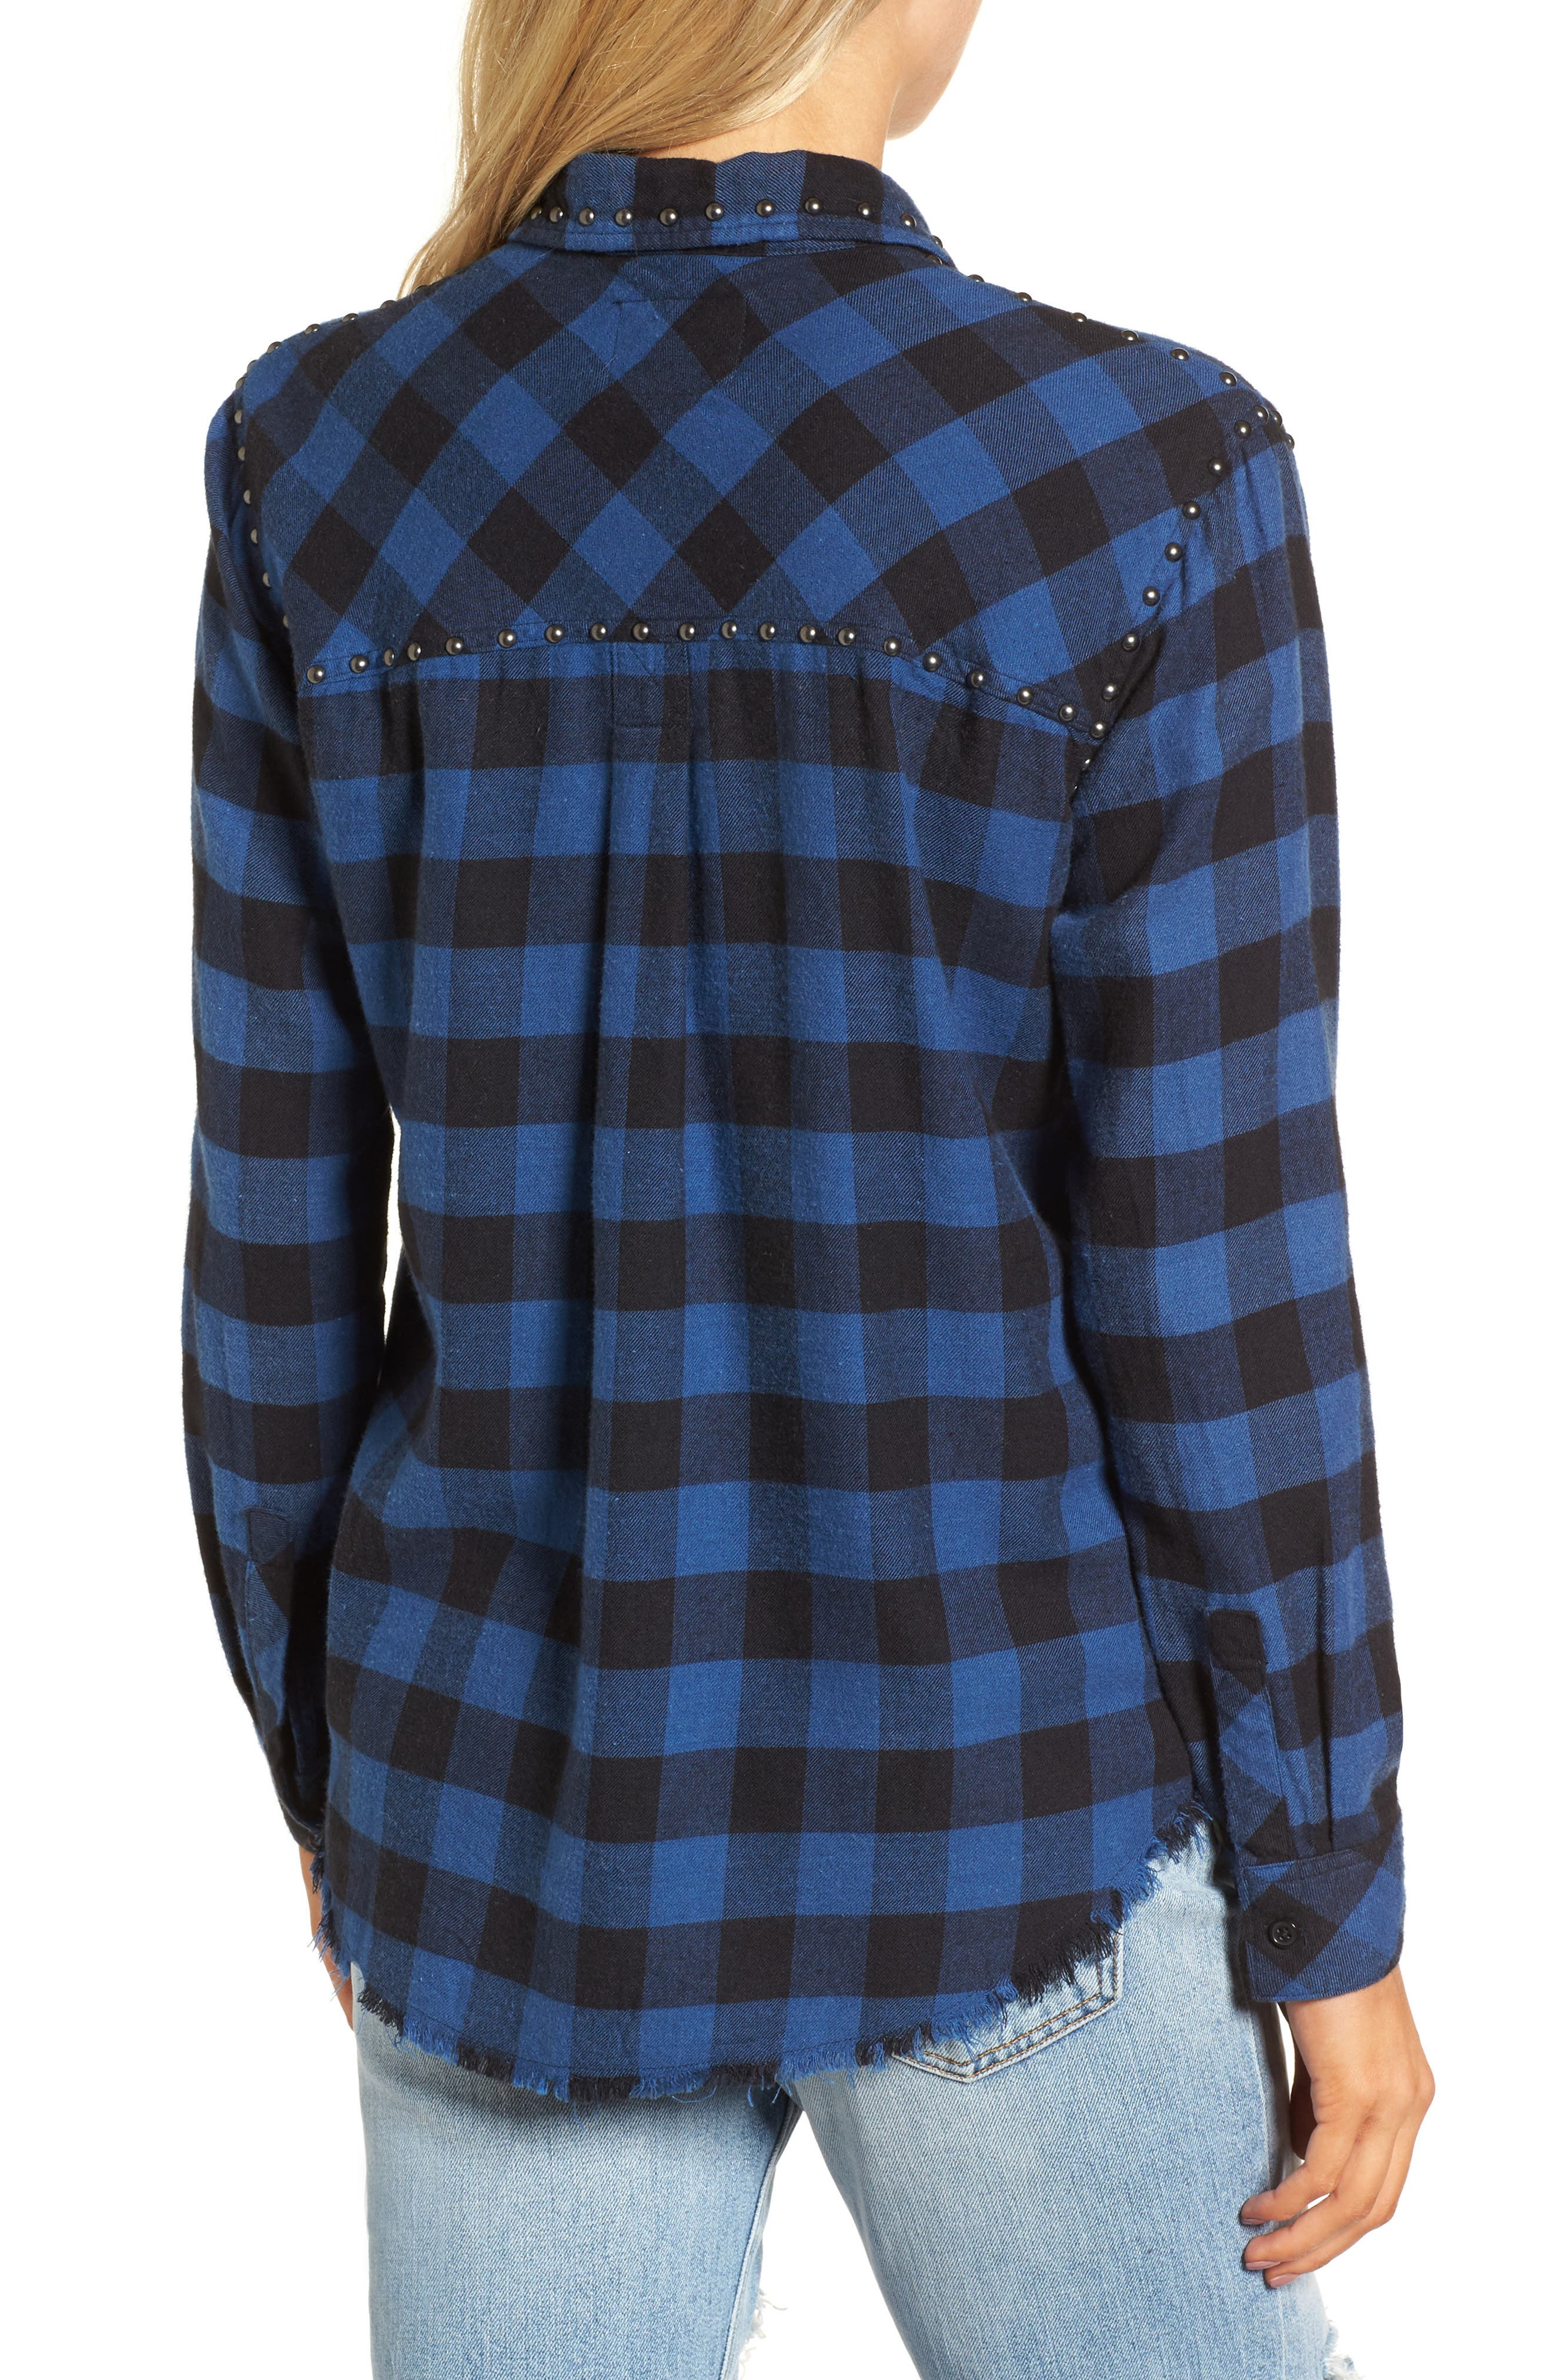 Rex Studded Flannel Shirt,                             Alternate thumbnail 3, color,                             Blue/ Black Check